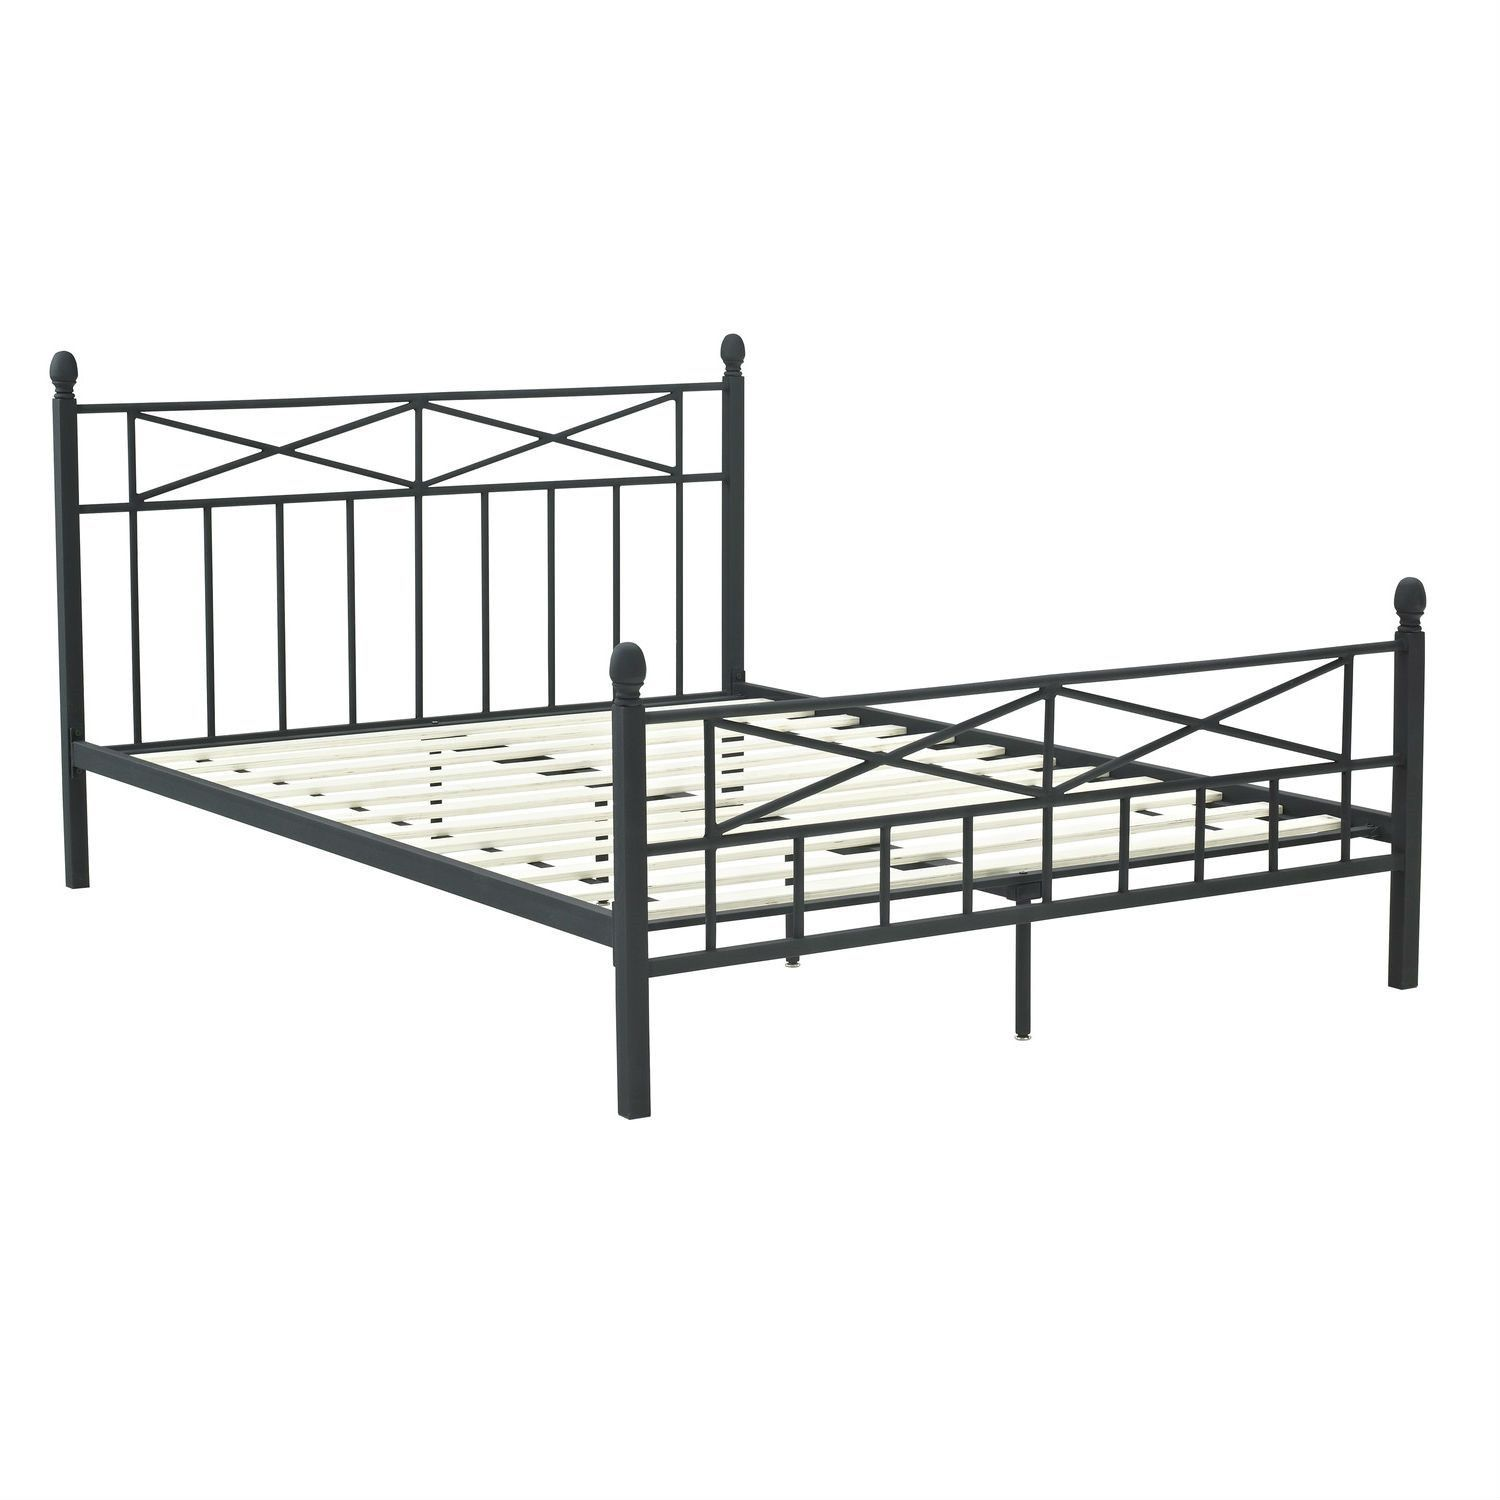 full size matte black metal platform bed frame with headboard footboard and wood slats